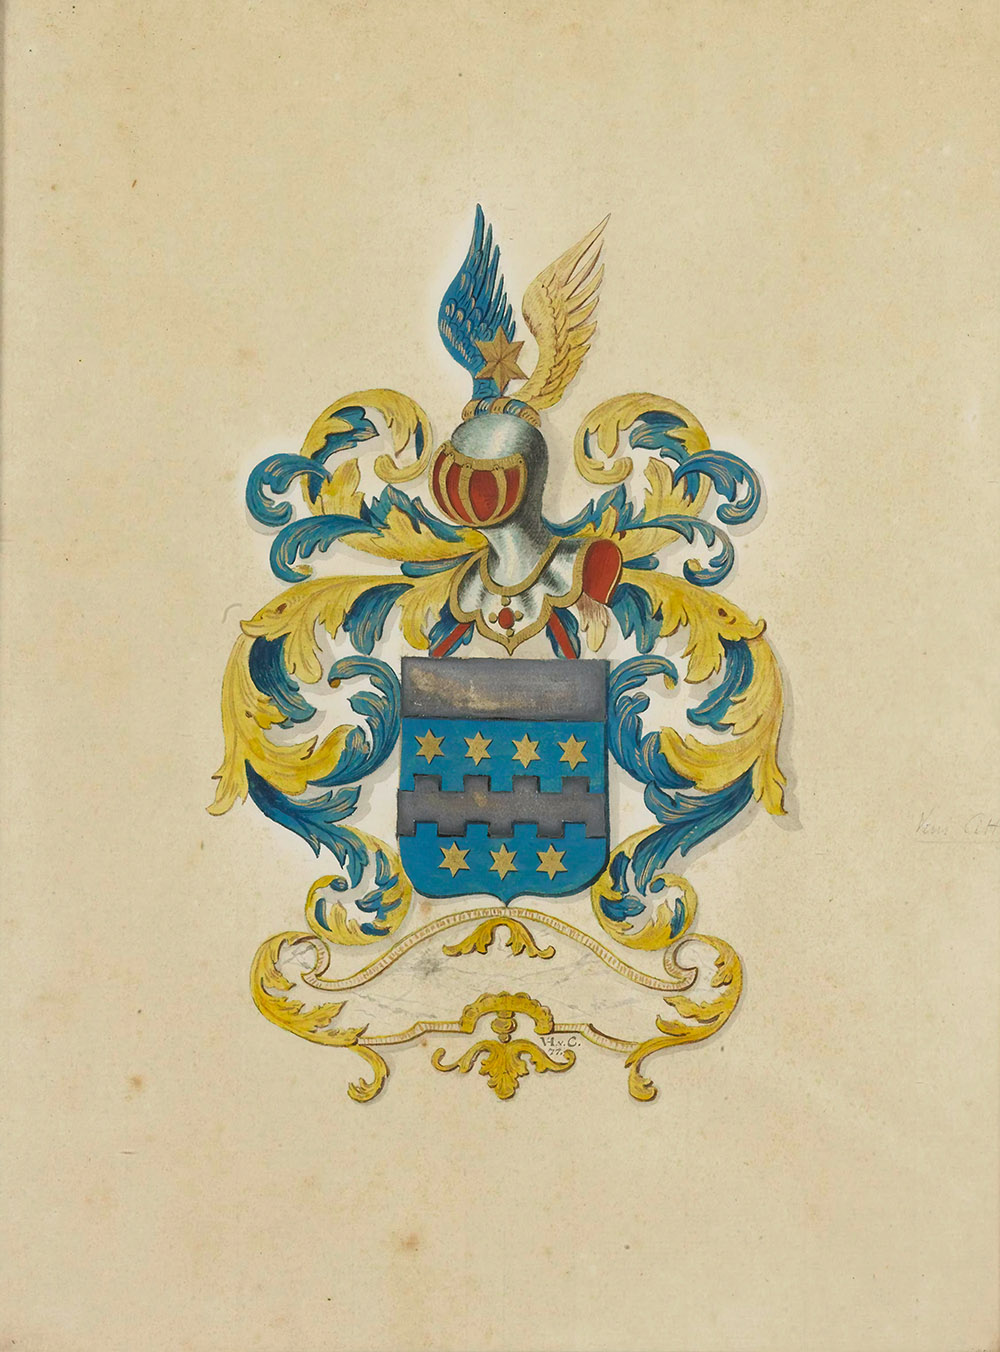 historical coat of arms of Citter family